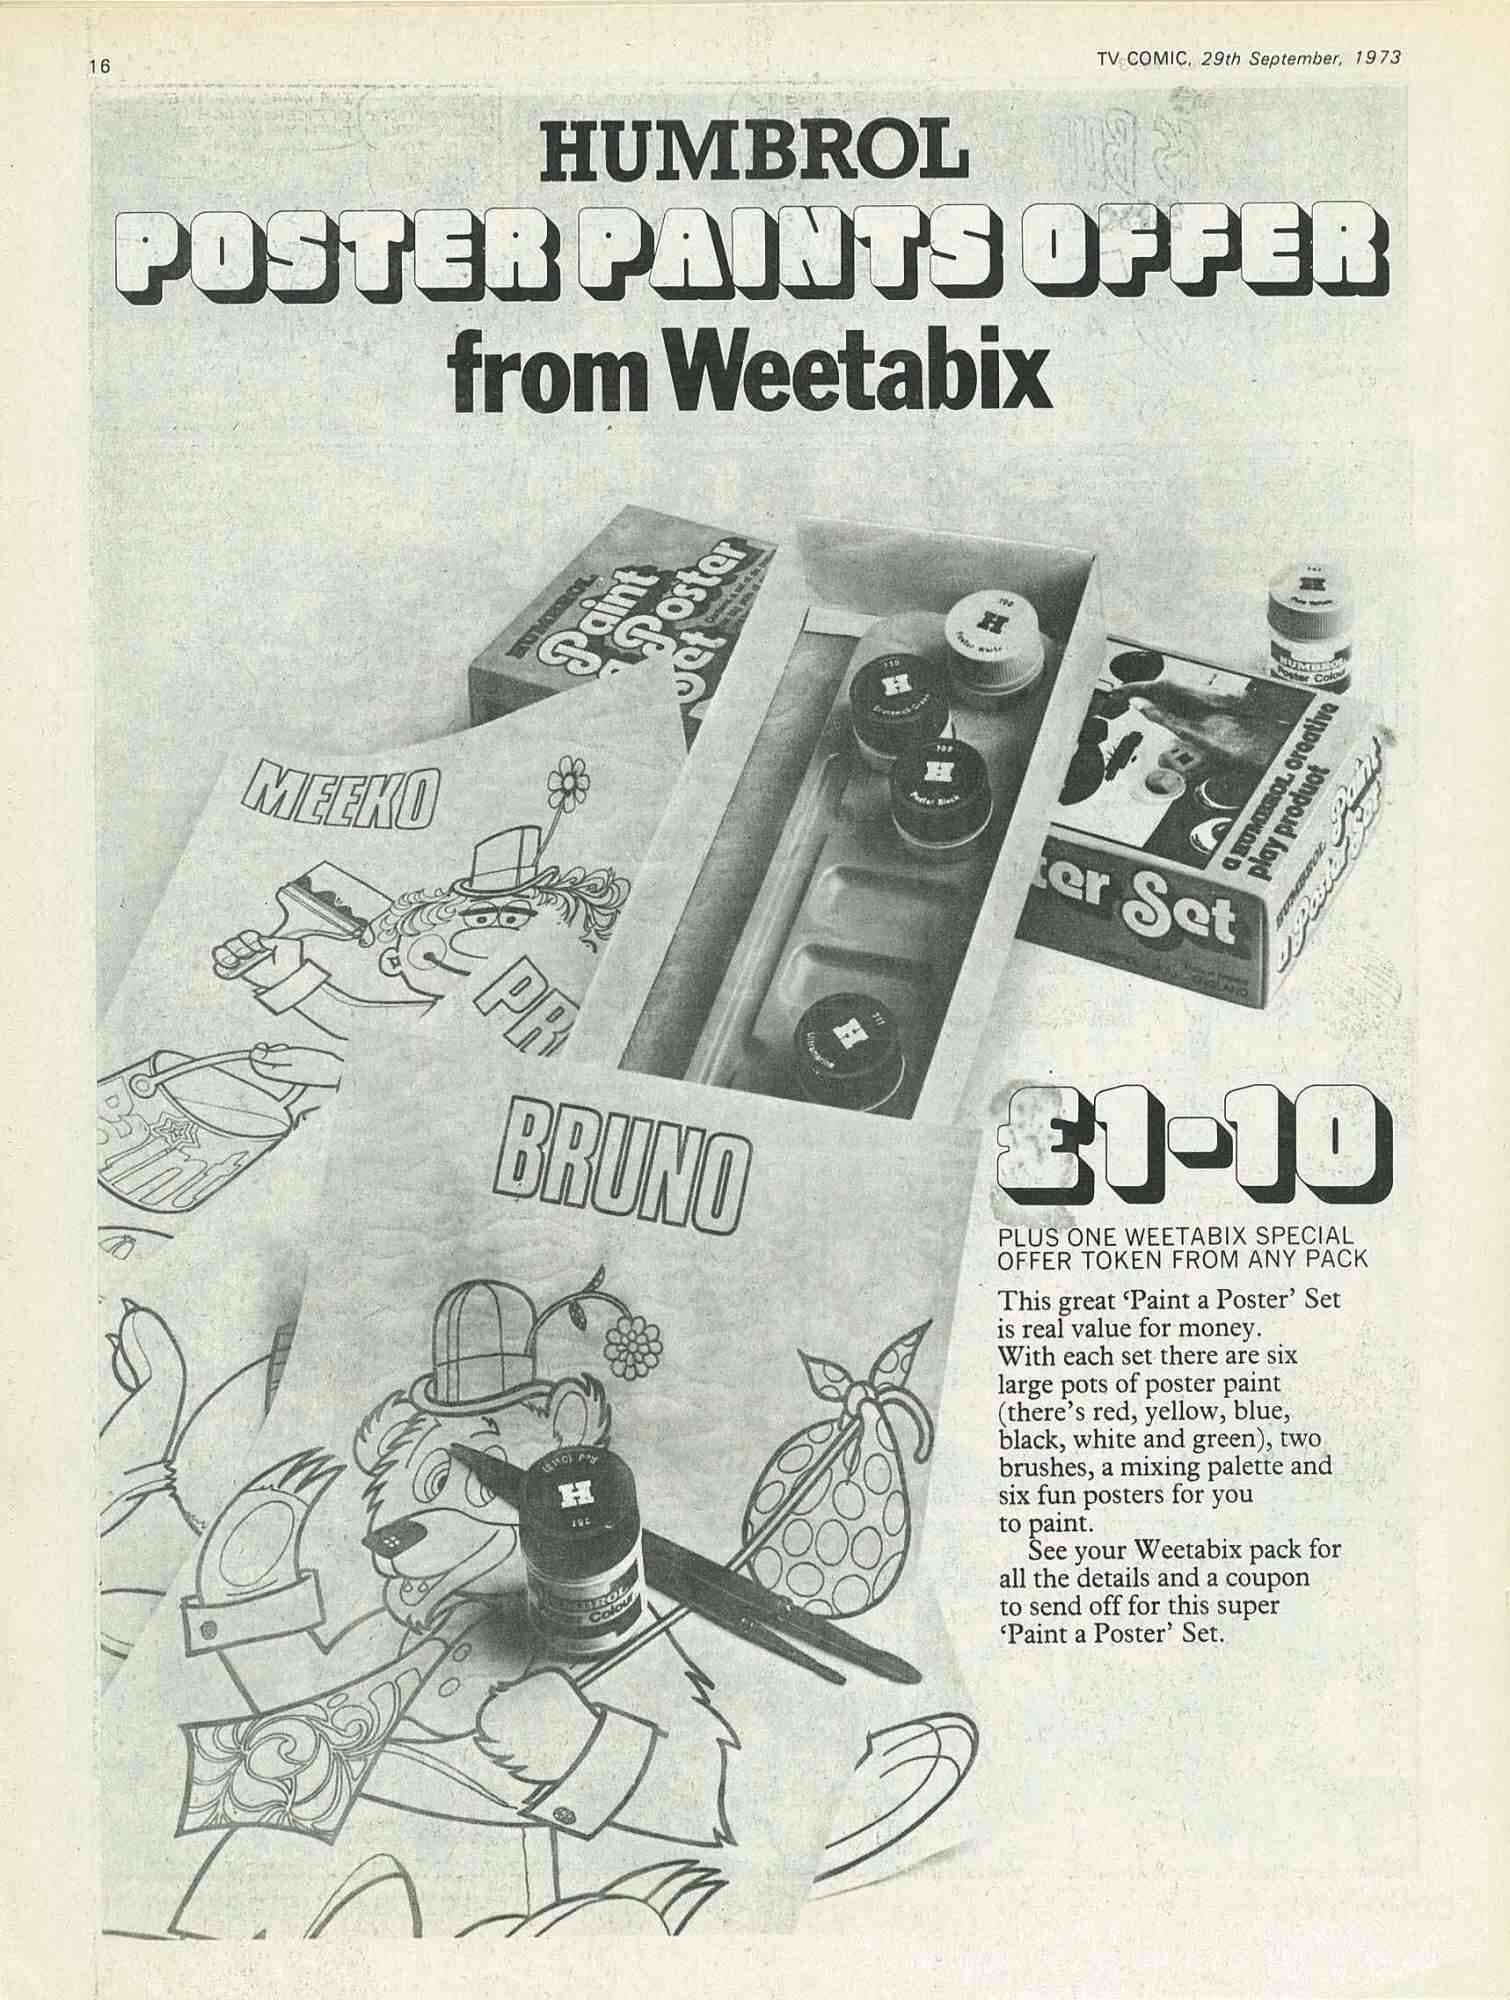 1973 Weetabix Poster Paints Offer